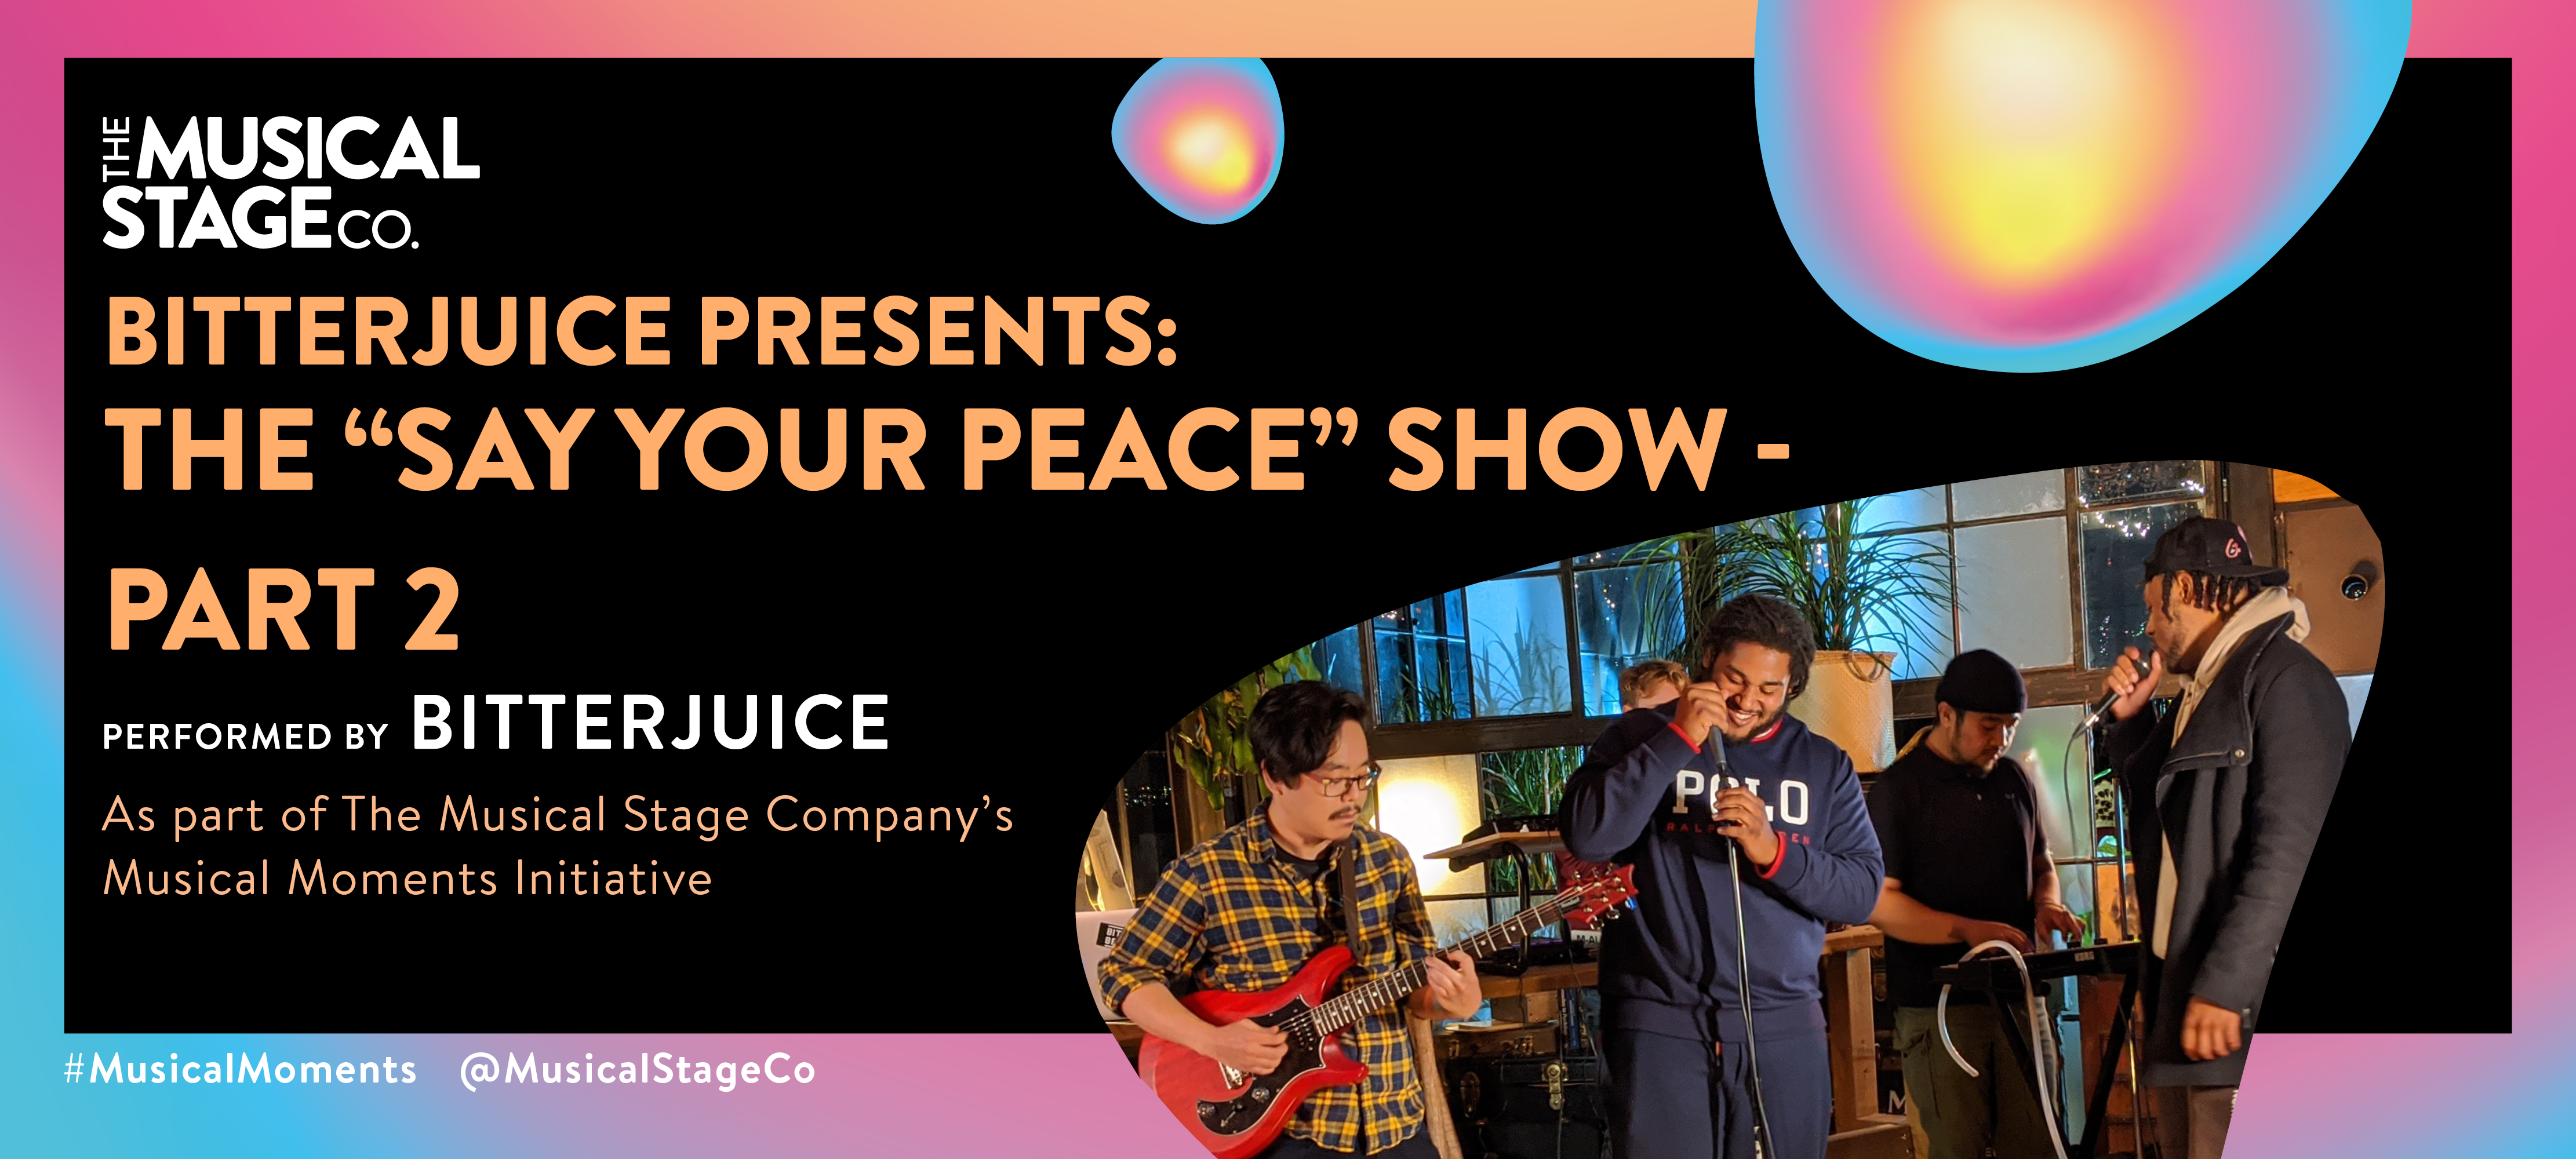 """Graphic of a black background and a gradient border of blue, pink and yellow. In front of the background are assorted blobs with the same gradient, with bold orange text reading, """"BITTERJUICE PRESENTS: THE 'SAY YOUR PEACE' SHOW - PART 2"""". Under that, smaller WHITE text reads, """"Performed by BITTERJUICE / As part of The Musical Stage Company's Musical Moments Initiative."""" A featured blob shows BitterJuice; a grassroots artist collective focused on organic freestyle music, jamming out at OBJX Studios in Toronto, ON. From left to right: Yoshinori Aoyama (DJ, Vocalist, Guitarist of """"BitterxBroke""""), Tyreek """"B1Gjuice"""" Phillips, Aaron Diaz (DJ, Producer, Instrumentalist of """"BitterxBroke""""), and Carray """"Ray HMND"""" Hammond."""